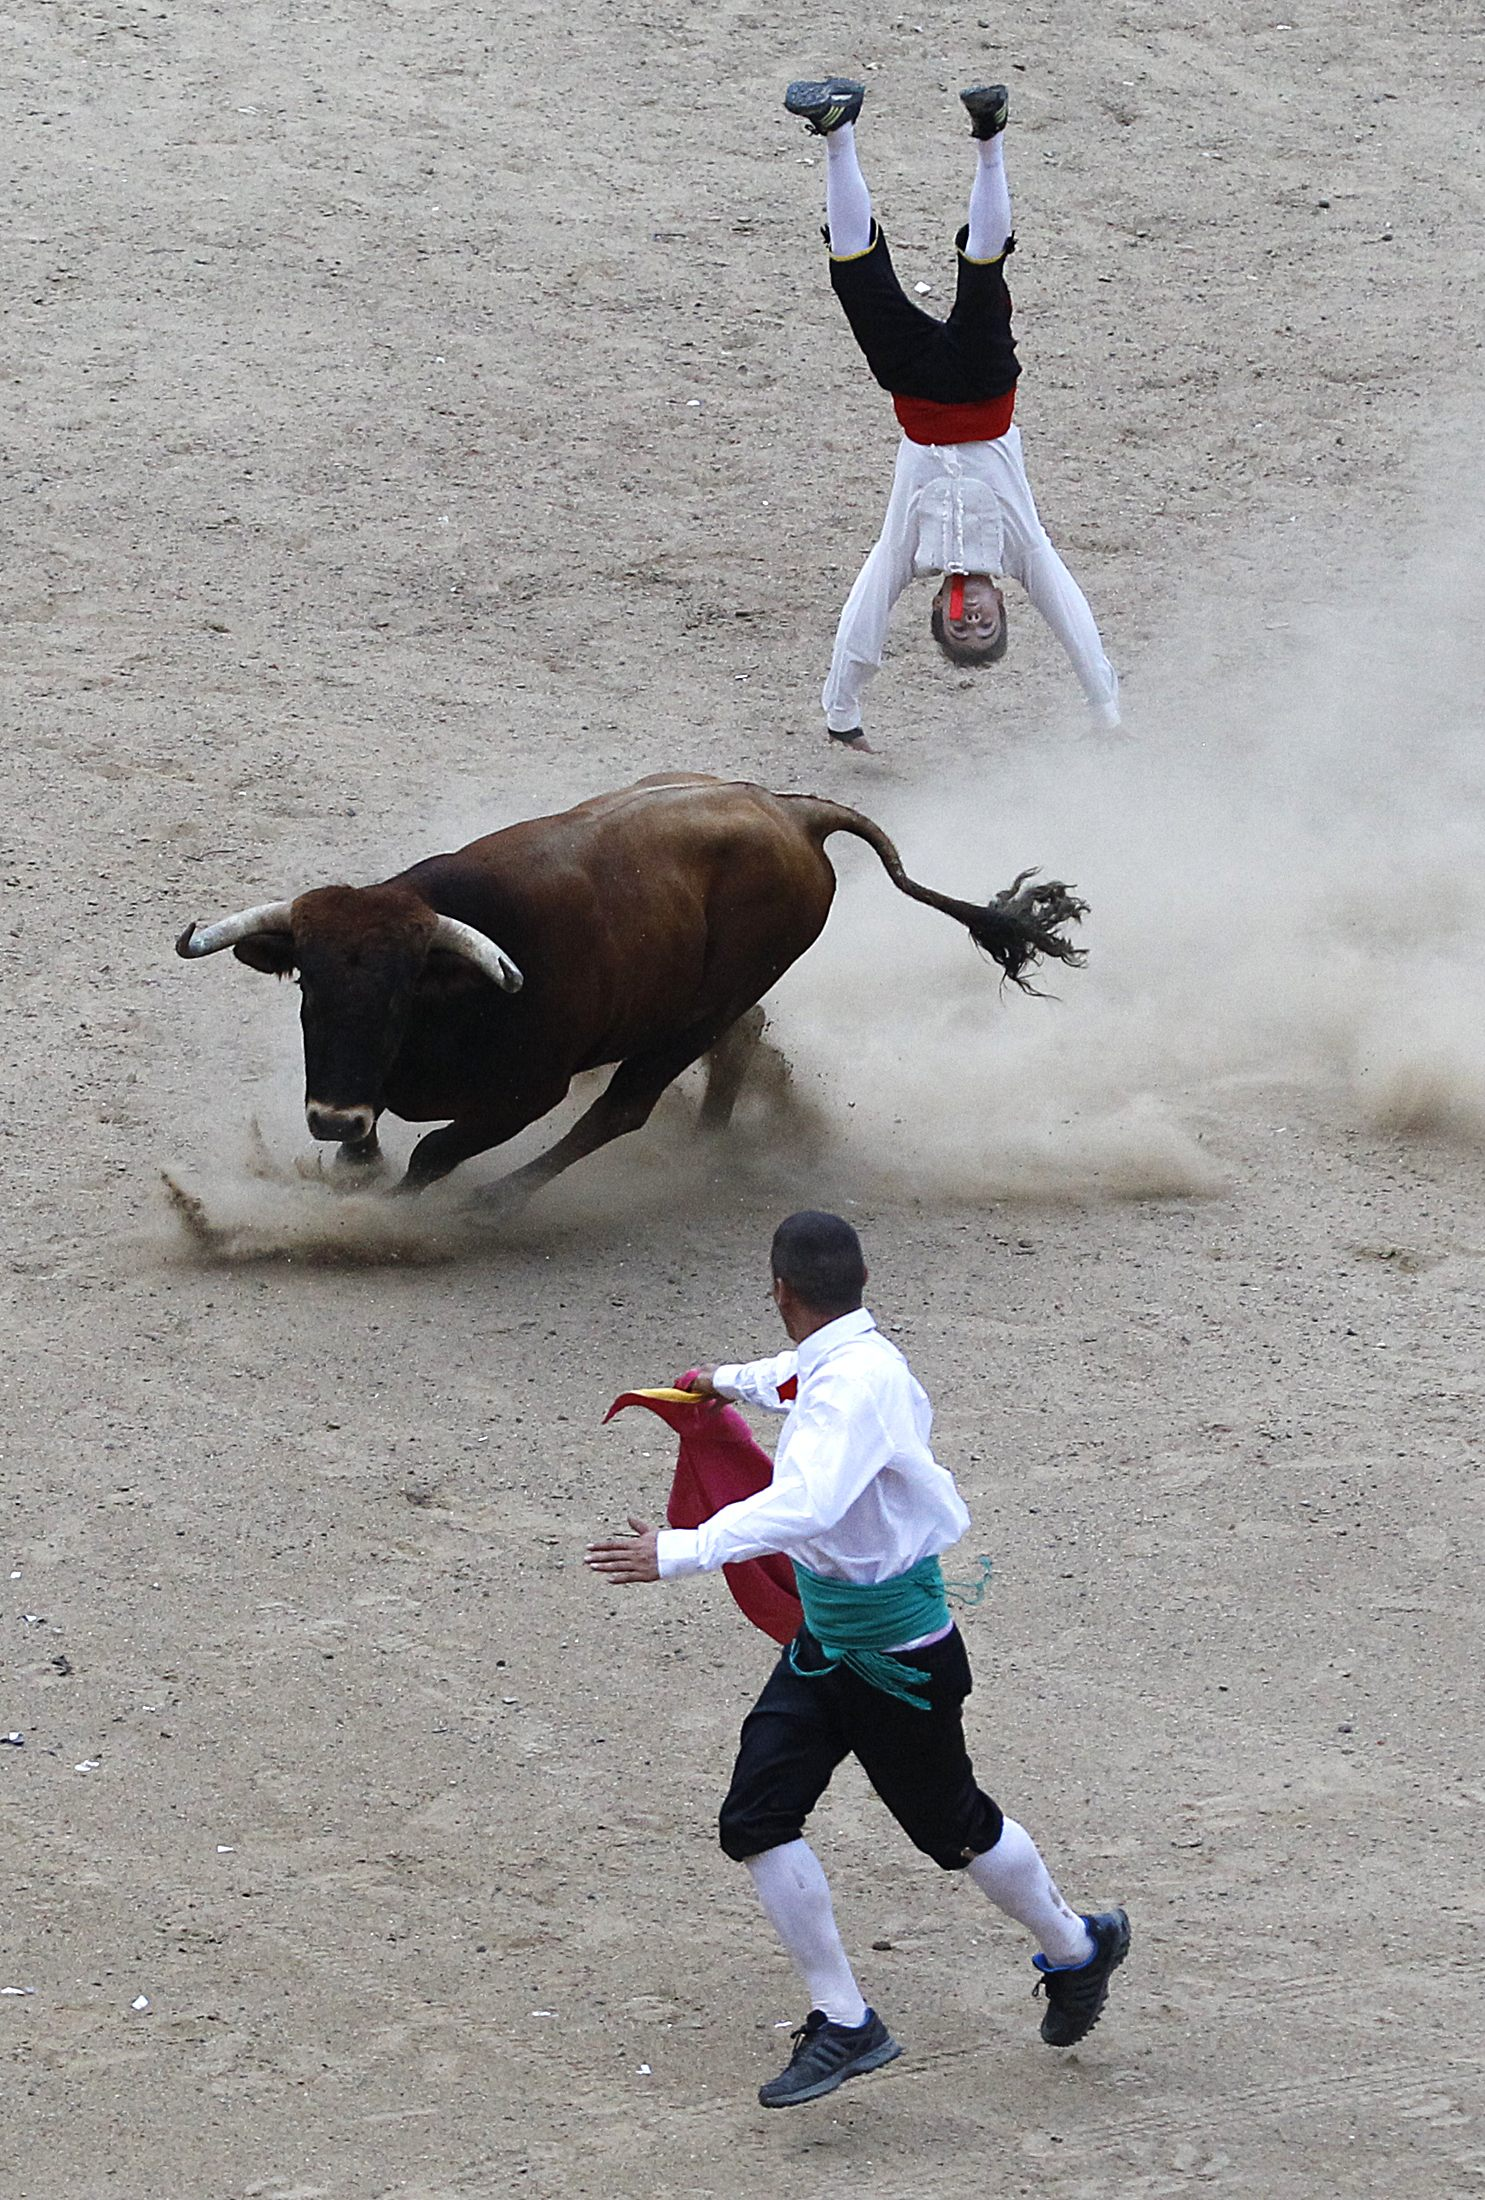 A Spanish recortadore jumps over a bull during a show in Cali